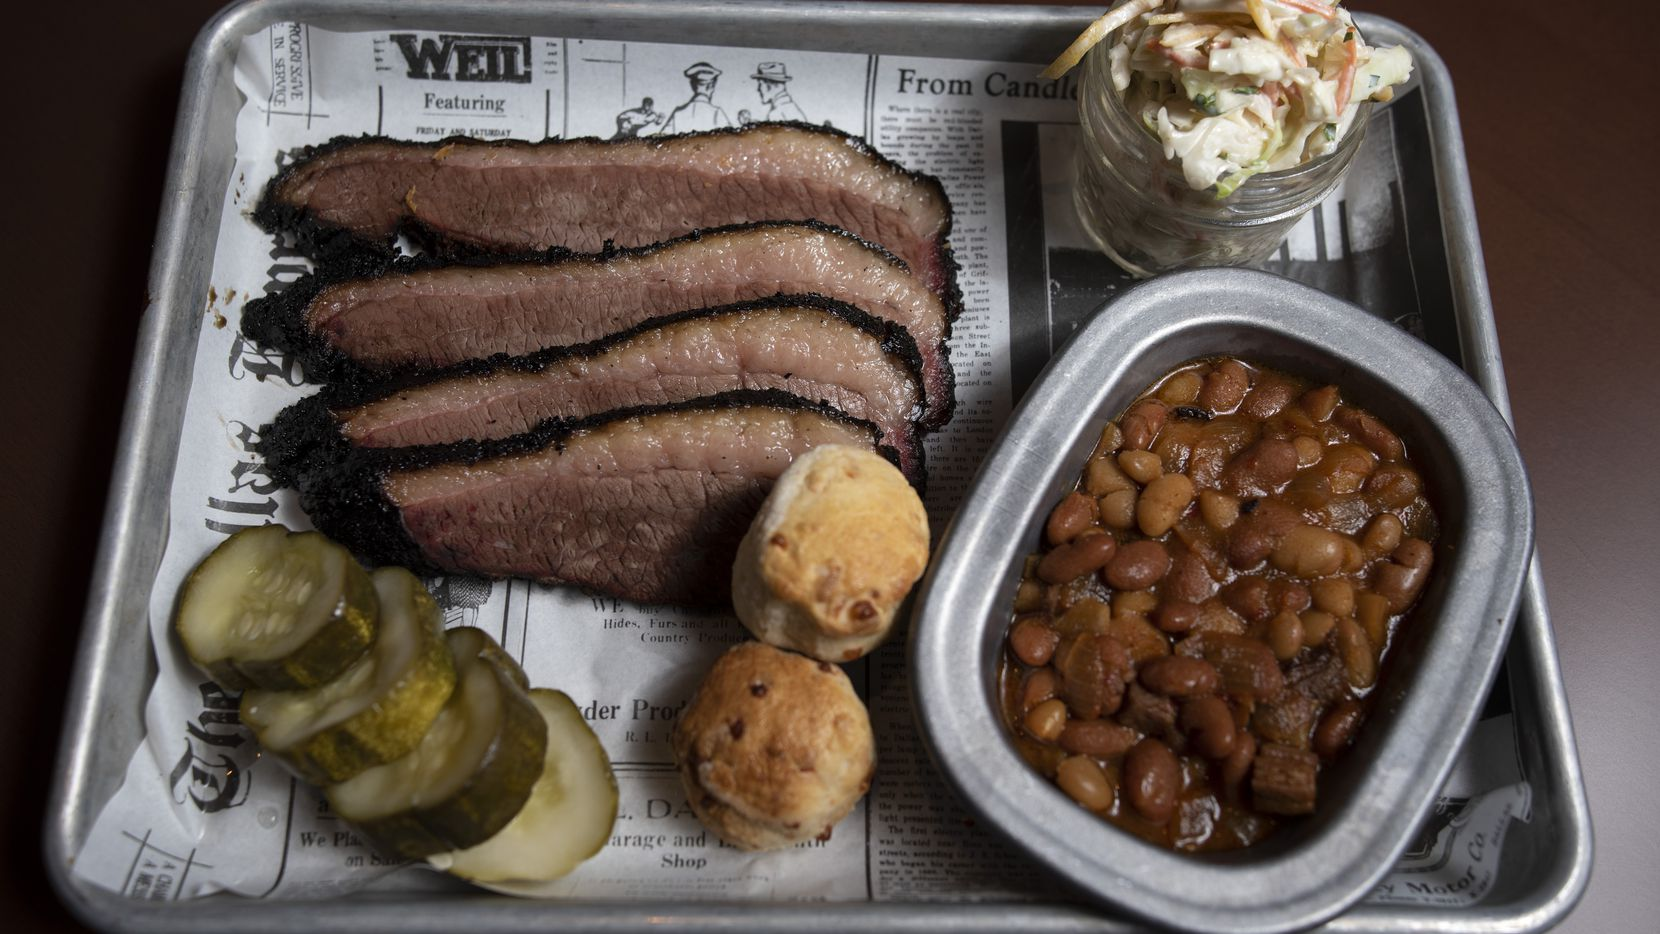 The menu at Seely's Mill, a barbecue restaurant in the new Beeman Hotel in Dallas, includes sliced brisket, burnt ends pit beans, slaw and cheddar biscuits. The restaurant opened Sept. 25, 2020.